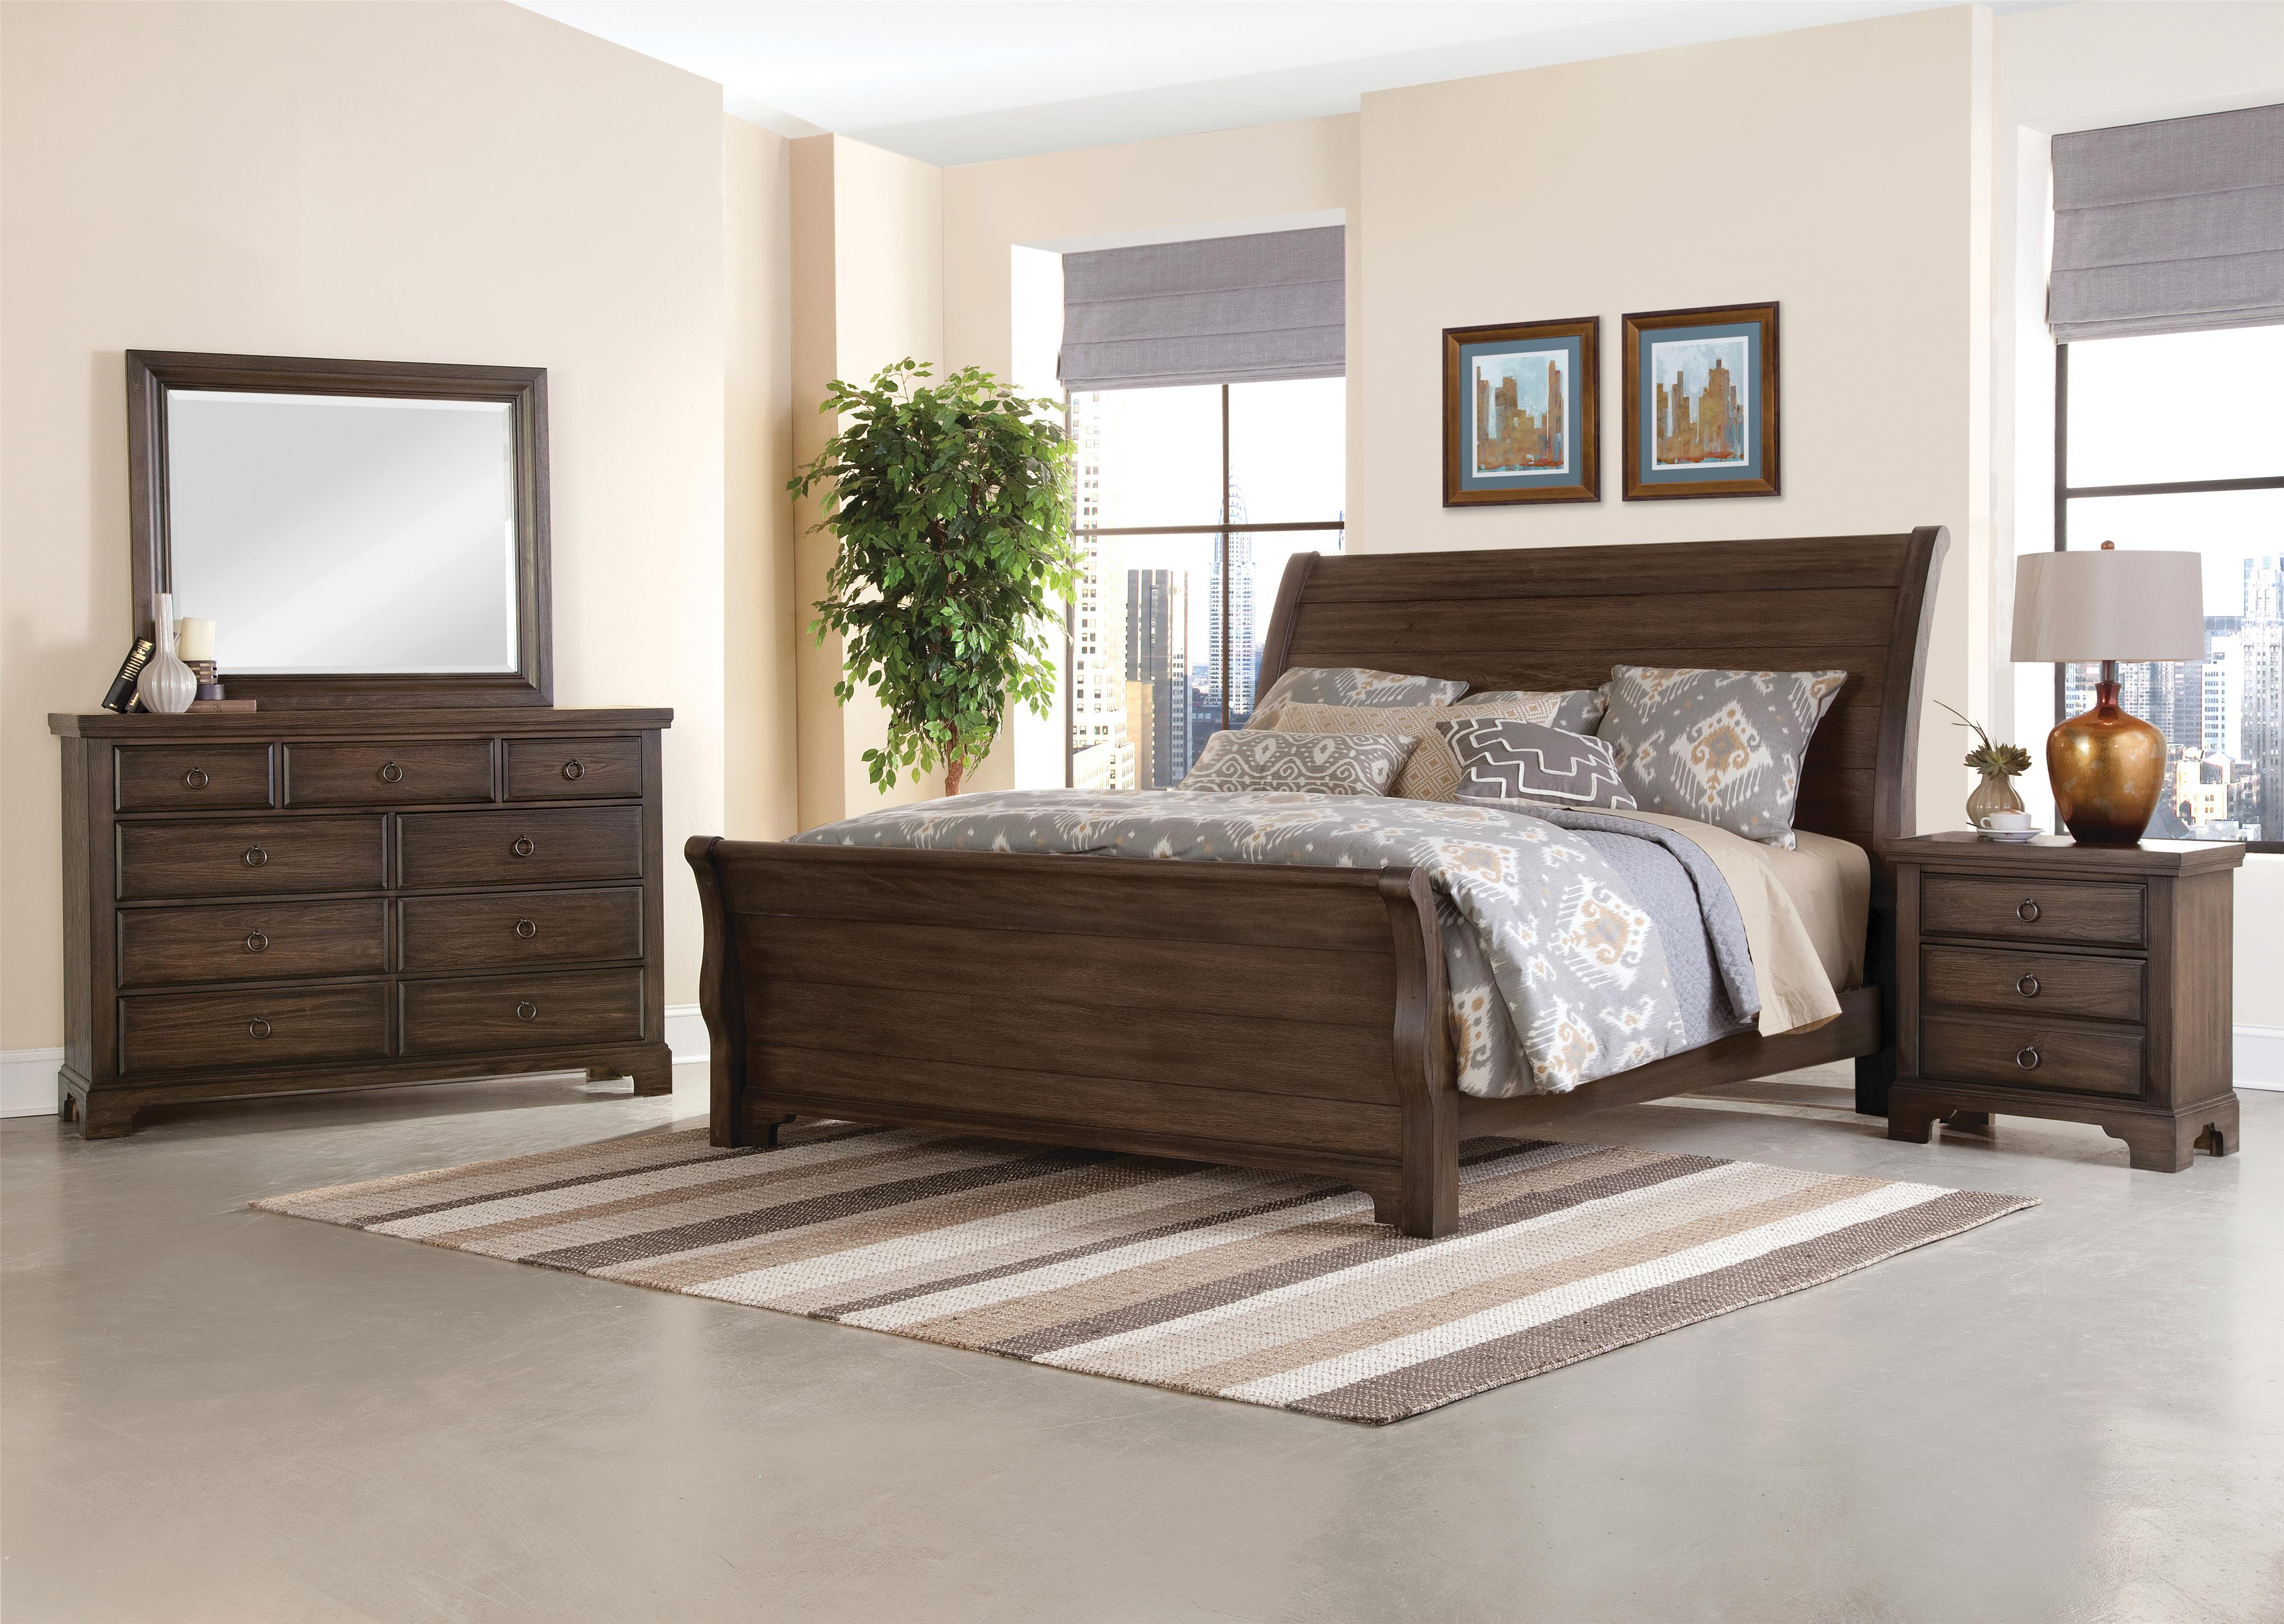 Vaughan Bassett Whiskey Barrel Queen Bedroom Group - Item Number: 816 Q Bedroom Group 1